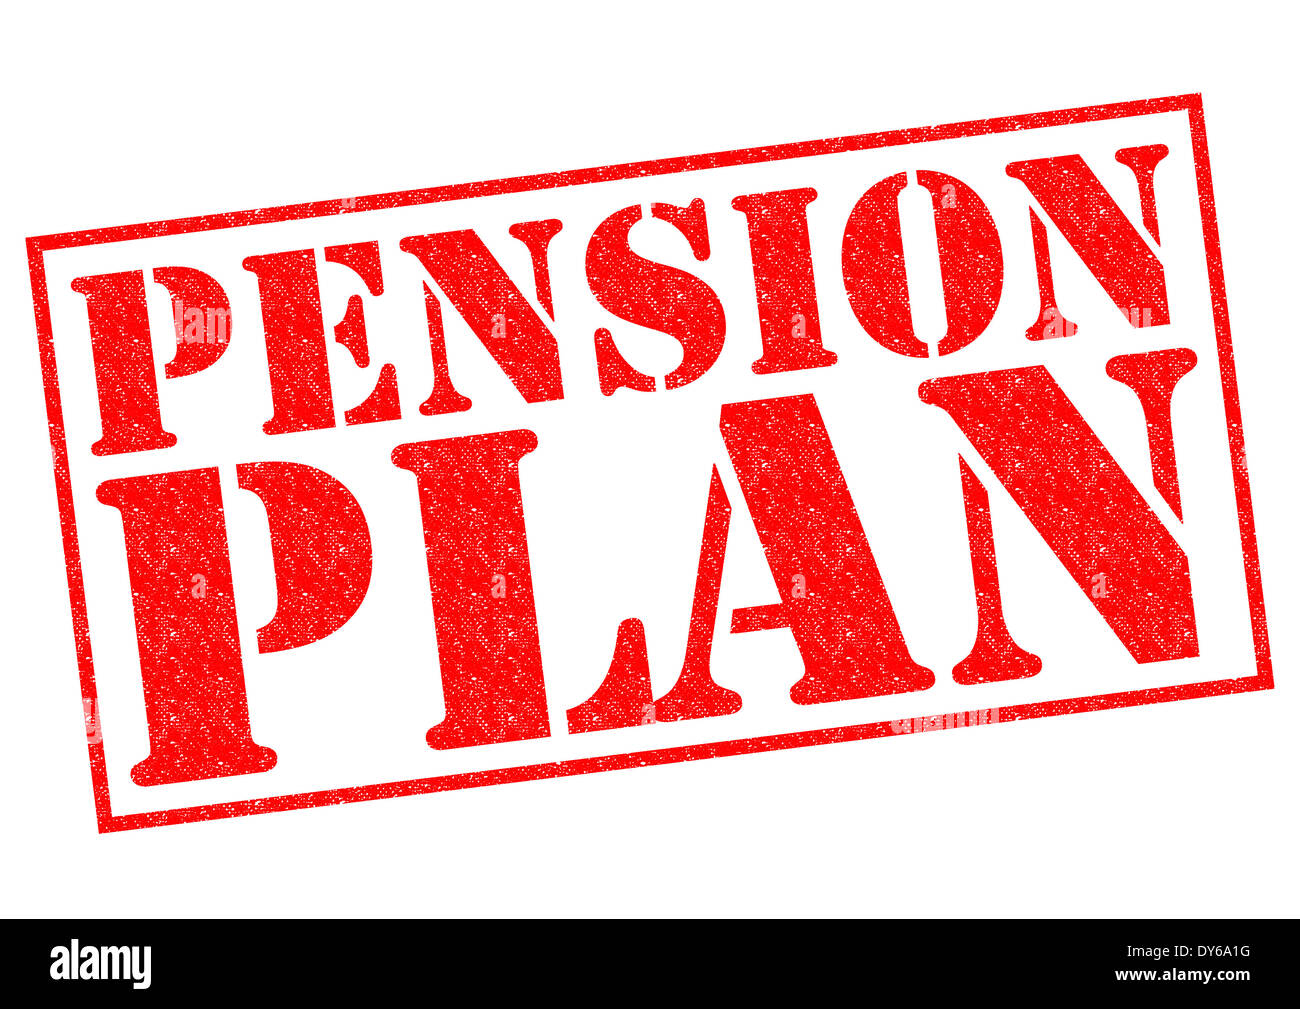 PENSION PLAN red Rubber Stamp over a white background. - Stock Image